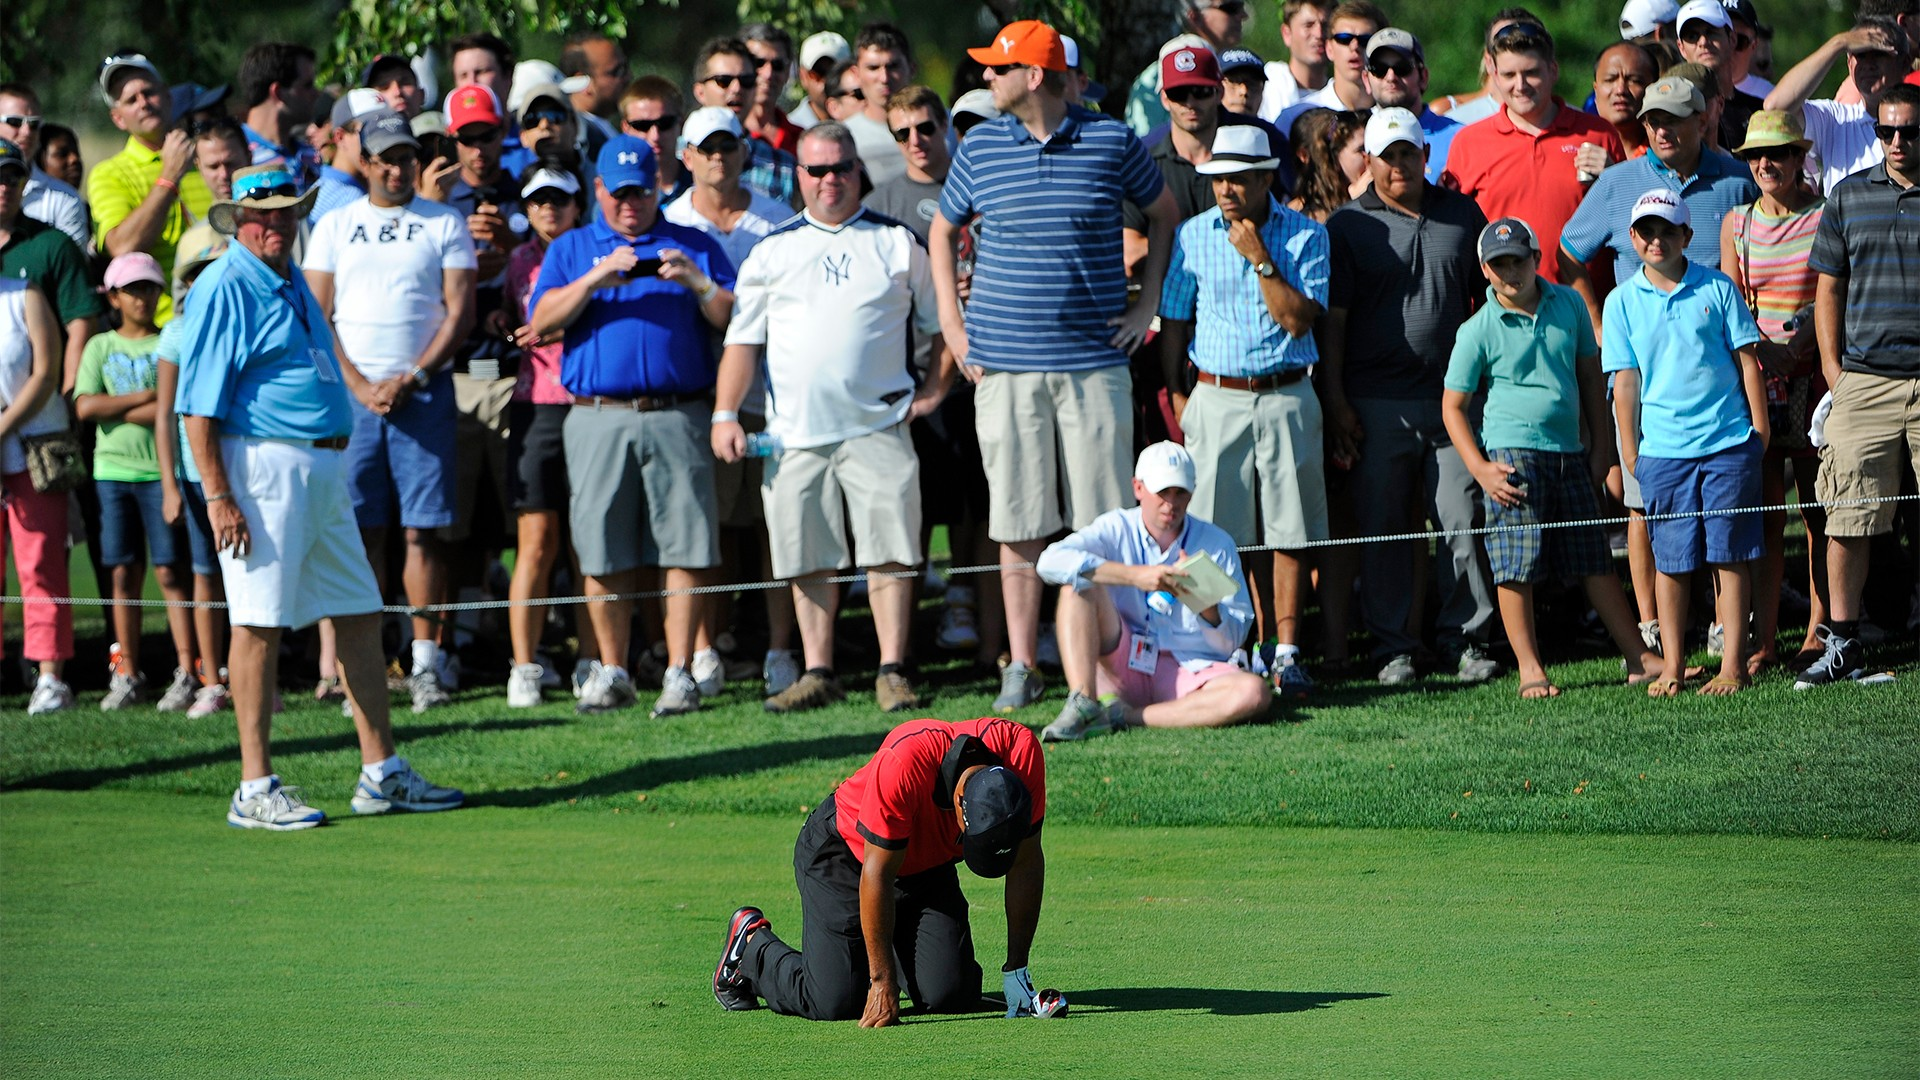 Tiger Woods list of injuries, back injury, The Barclays 2013